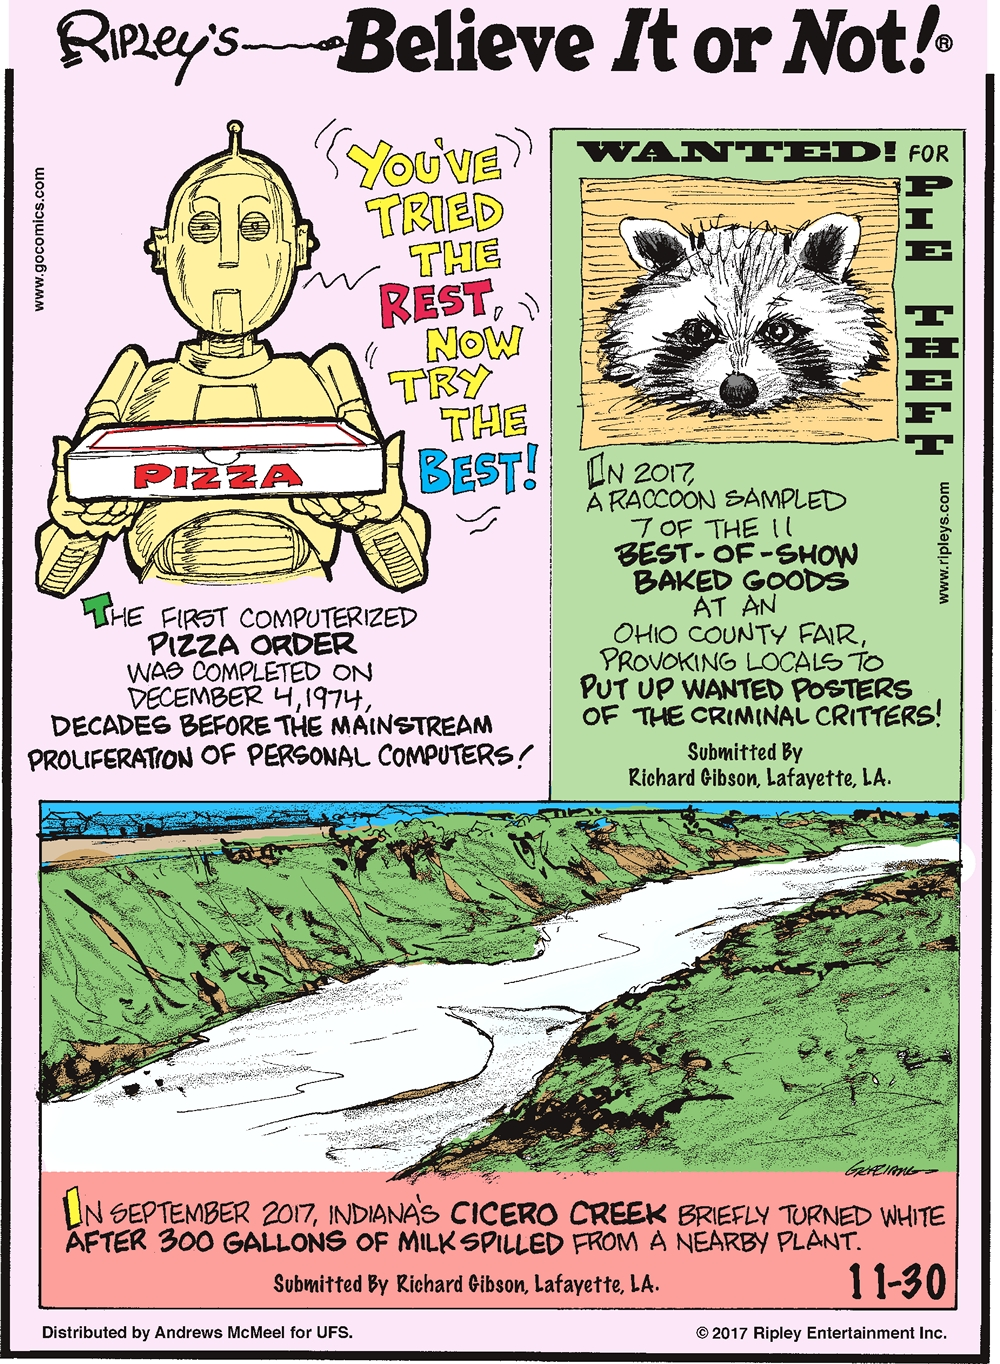 The first computerized pizza order was completed on December 4, 1974, decades before the mainstream proliferation of personal computers!--------------------- In 2017, a raccoon sampled 7 of the 11 best-of-show baked goods at an Ohio County Fair, provoking locals to put up wanted posters of the criminal critters! Submitted by Richard Gibson, Lafayette, LA.-------------------- In September 2017, Indiana's Cicero Creek briefly turned white after 300 gallons of milk spilled from a nearby plant. Submitted by Richard Gibson, Lafayette, LA.